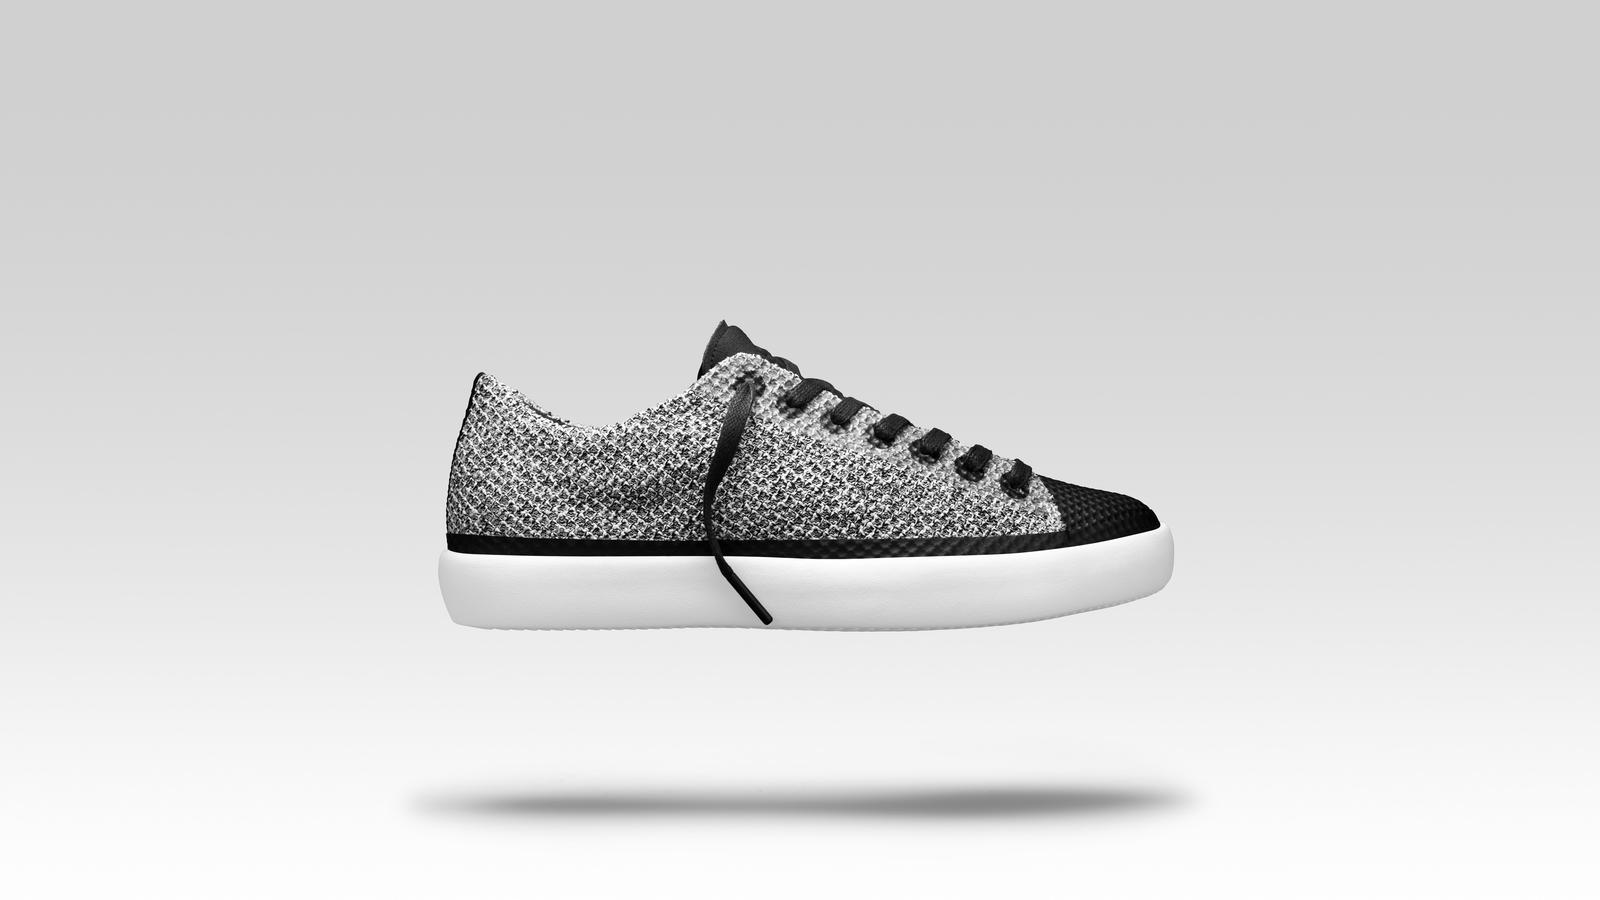 premium selection a80dc abf13 CONVERSE UNVEILS THE ALL STAR MODERN SNEAKER INSPIRED BY THE ...